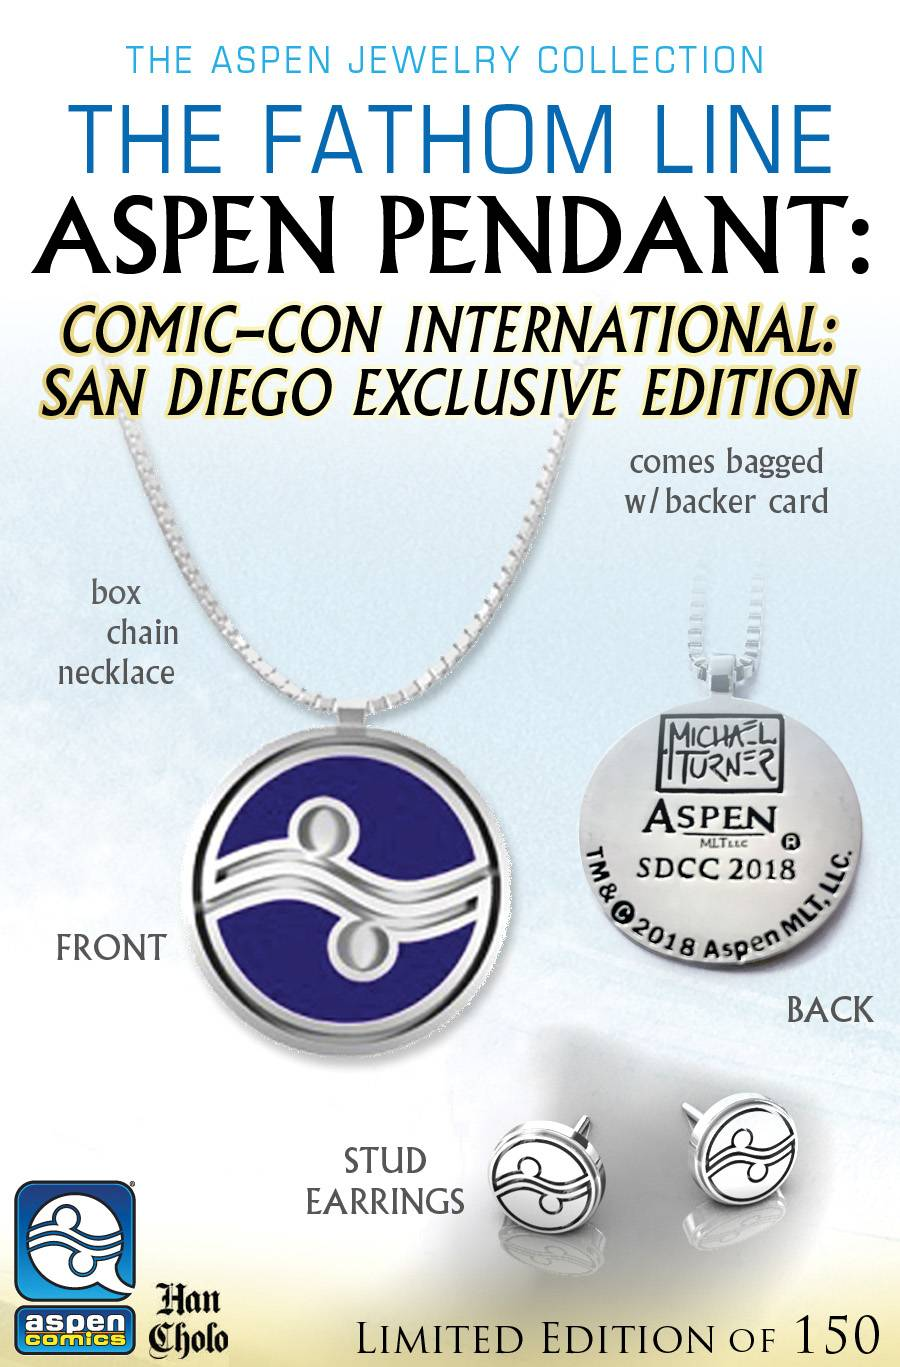 SDCC 2018 ASPEN PENDANT & EARRINGS SET